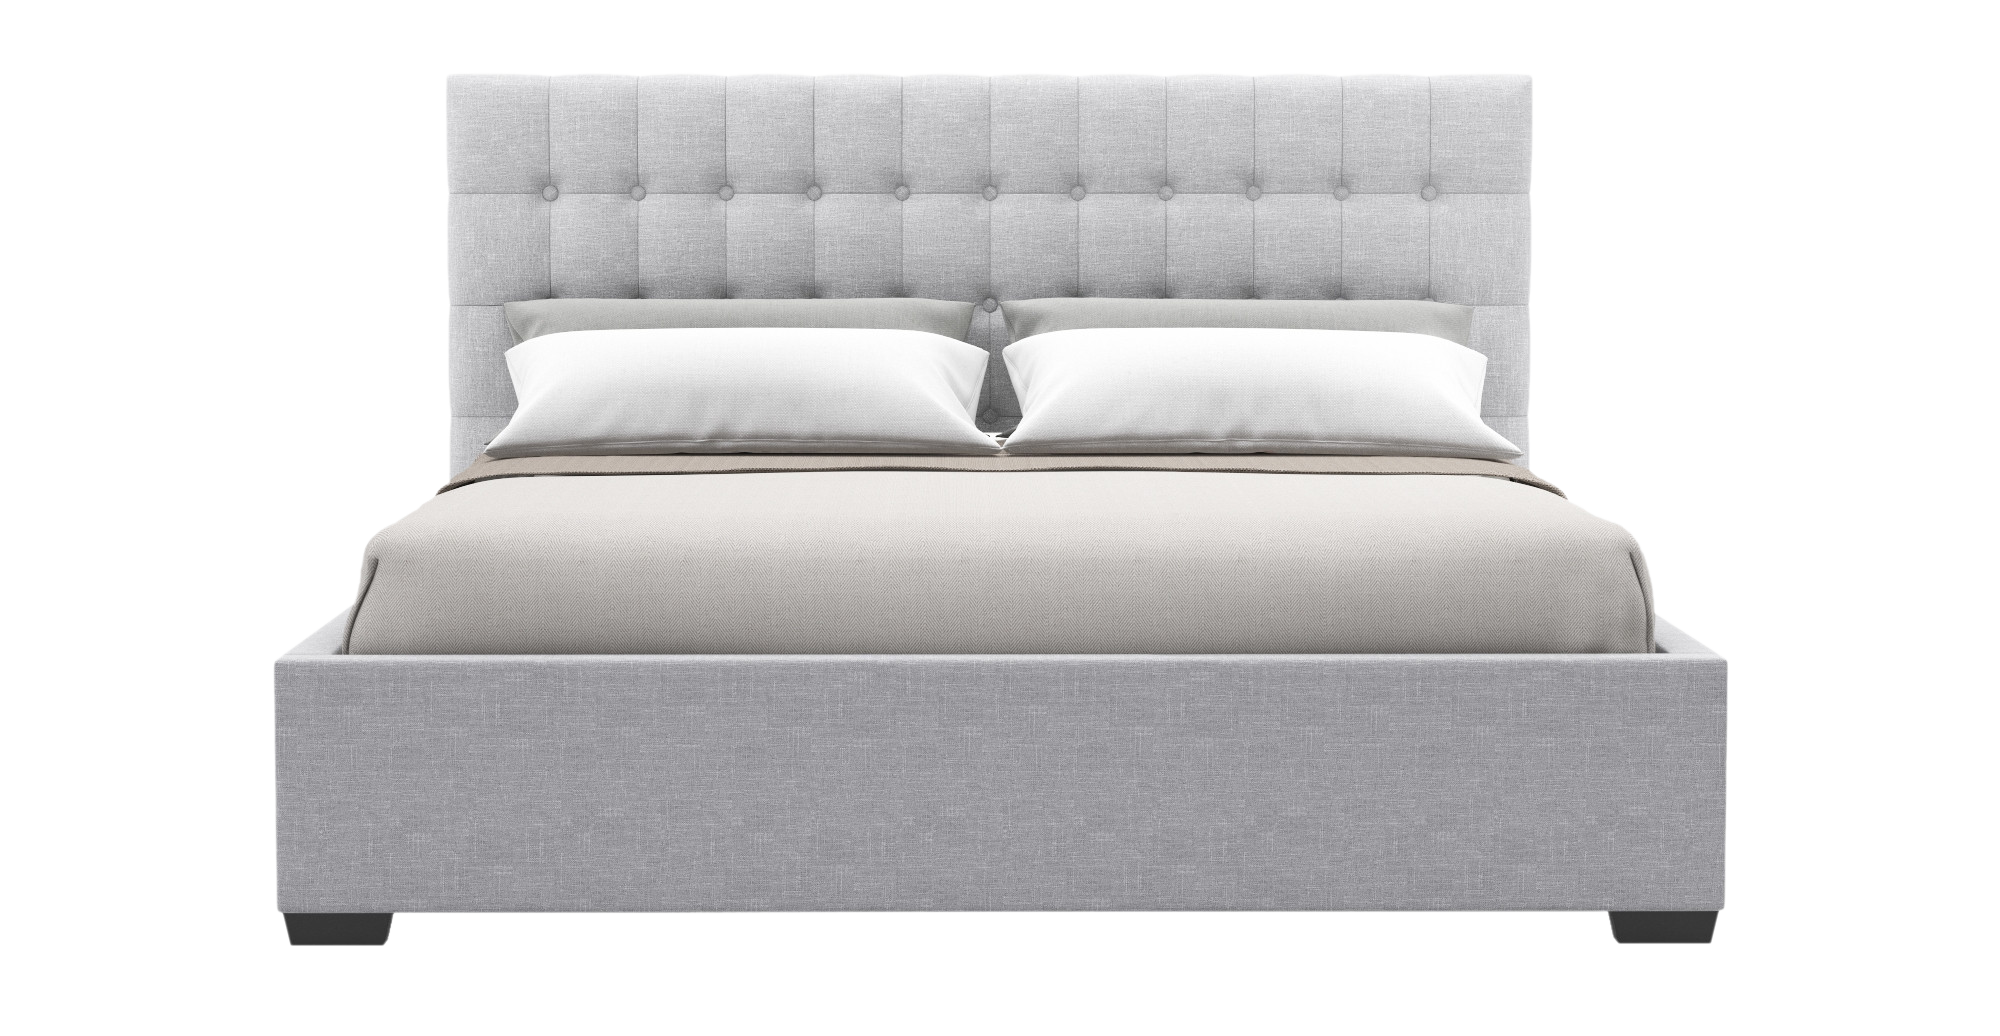 Furniture clipart bed sheet. Png e churl co